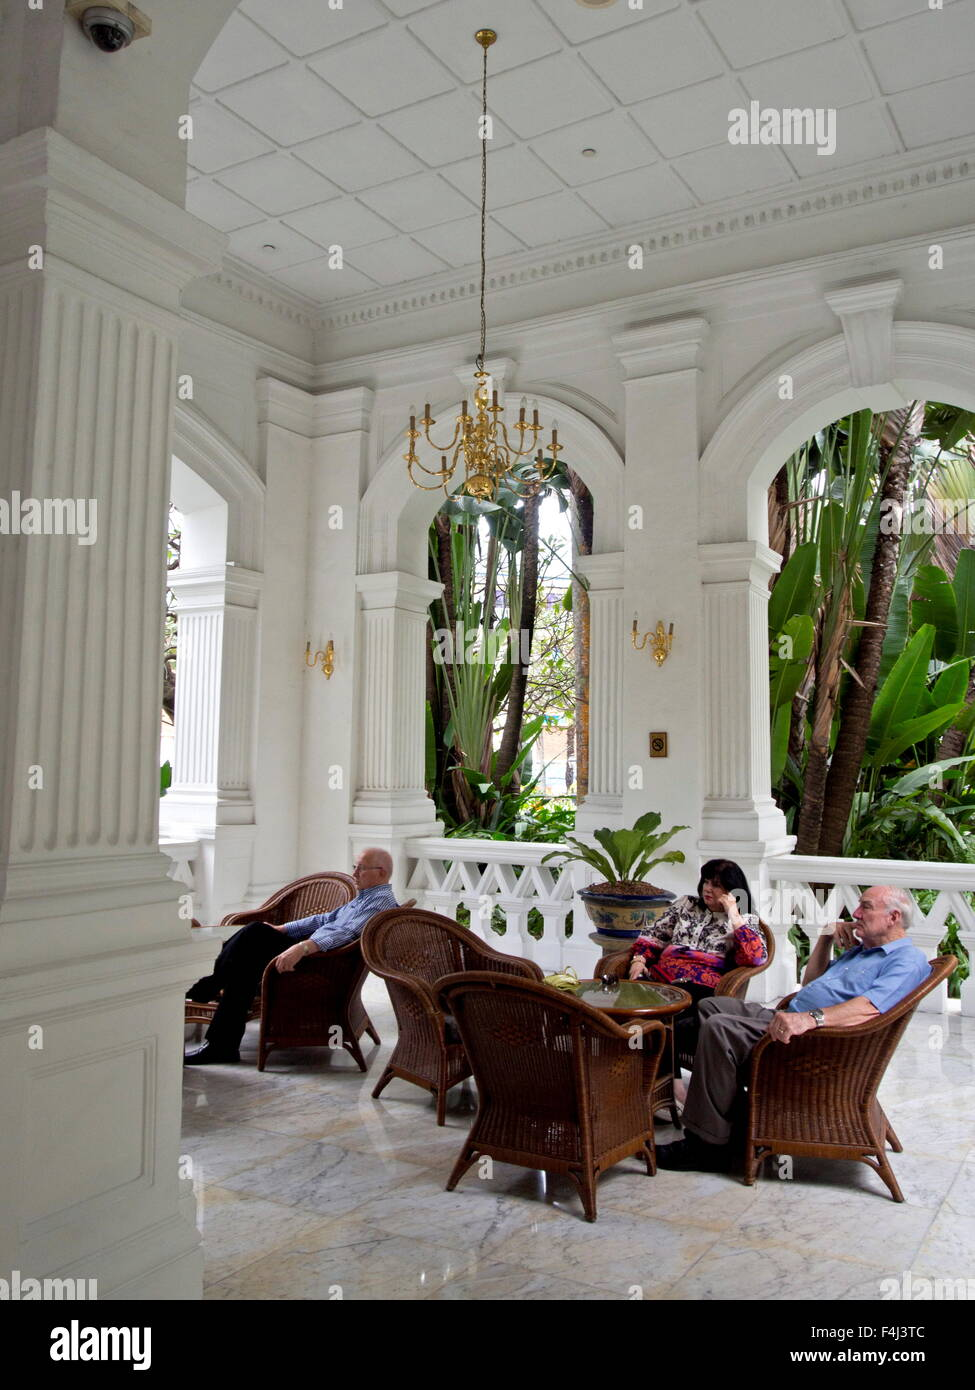 The world famous Raffles Hotel in Singapore, Southeast Asia, Asia - Stock Image